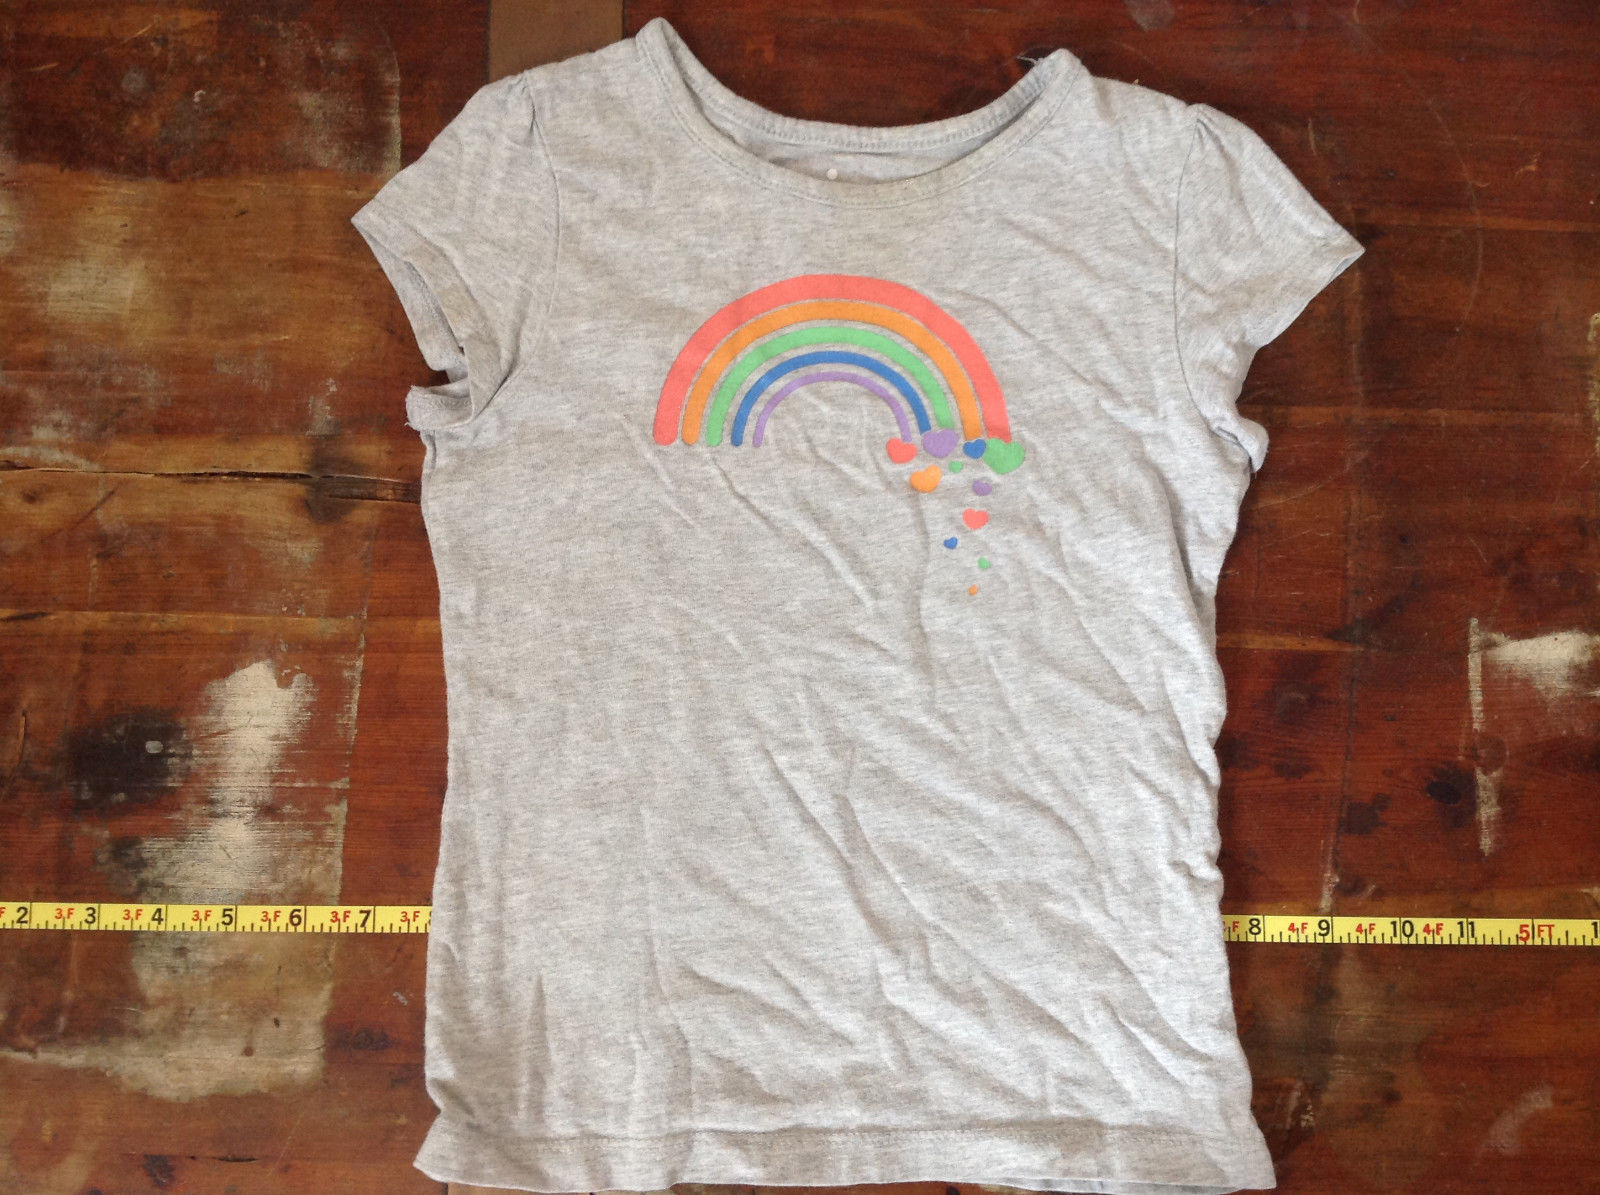 Gray Short Sleeve Shirt with Rainbow Design by Circo Size 6 to 6X